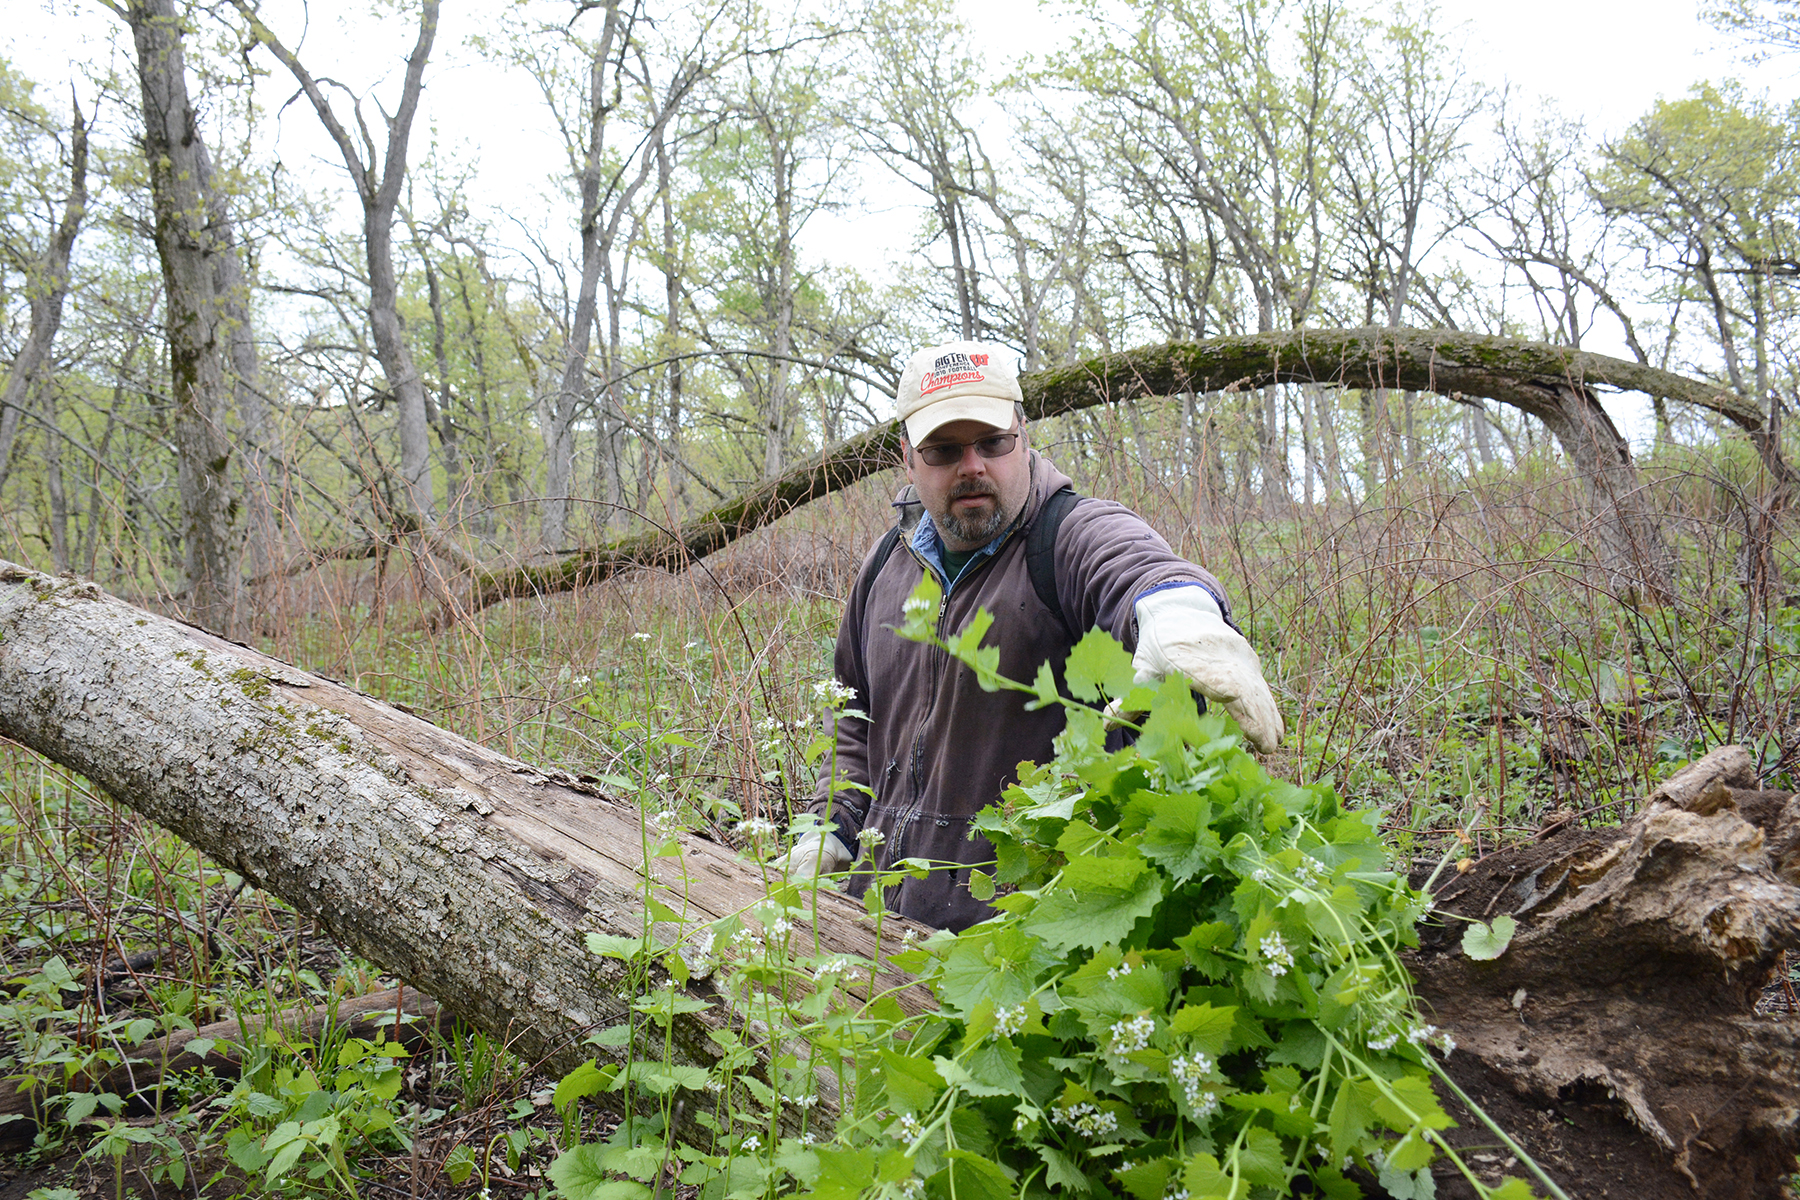 Jeff Meyers piles up invasive garlic mustard during a volunteer work day at Muehllehner Addition - Barneveld Prairie, Wis. May 14, 2016.